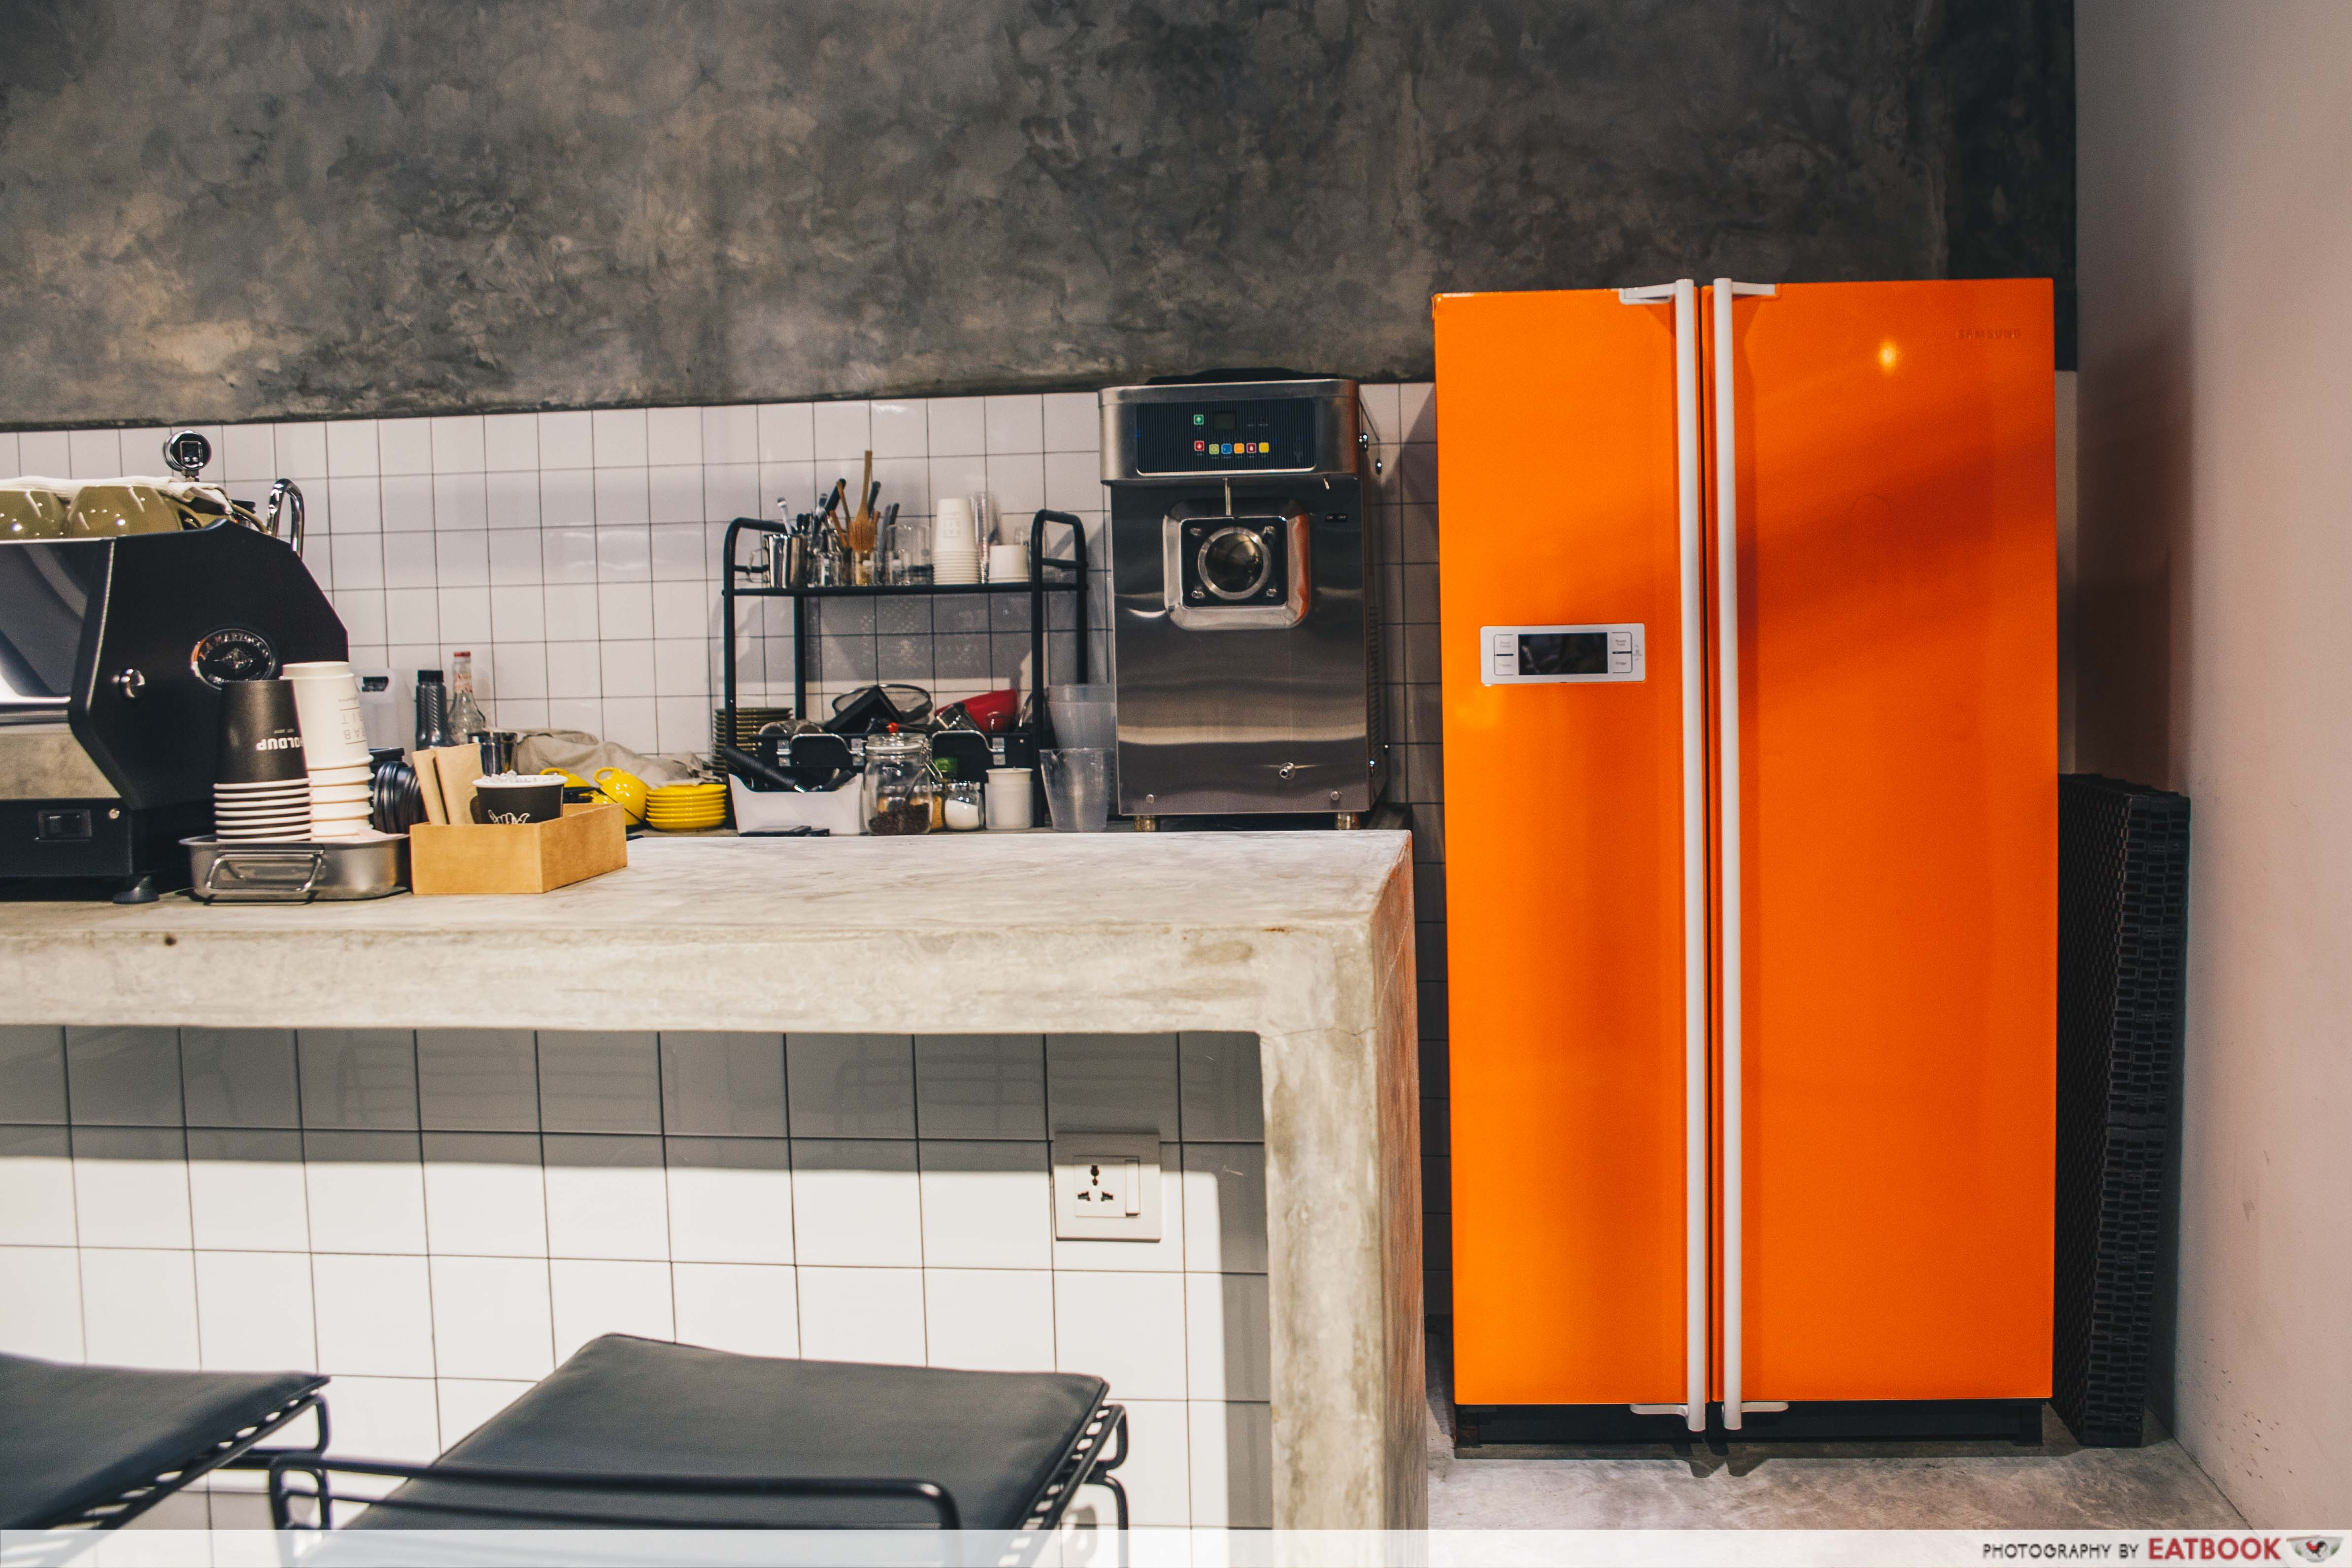 Cafes in Penang - Out of Nowhere Orange Fridge